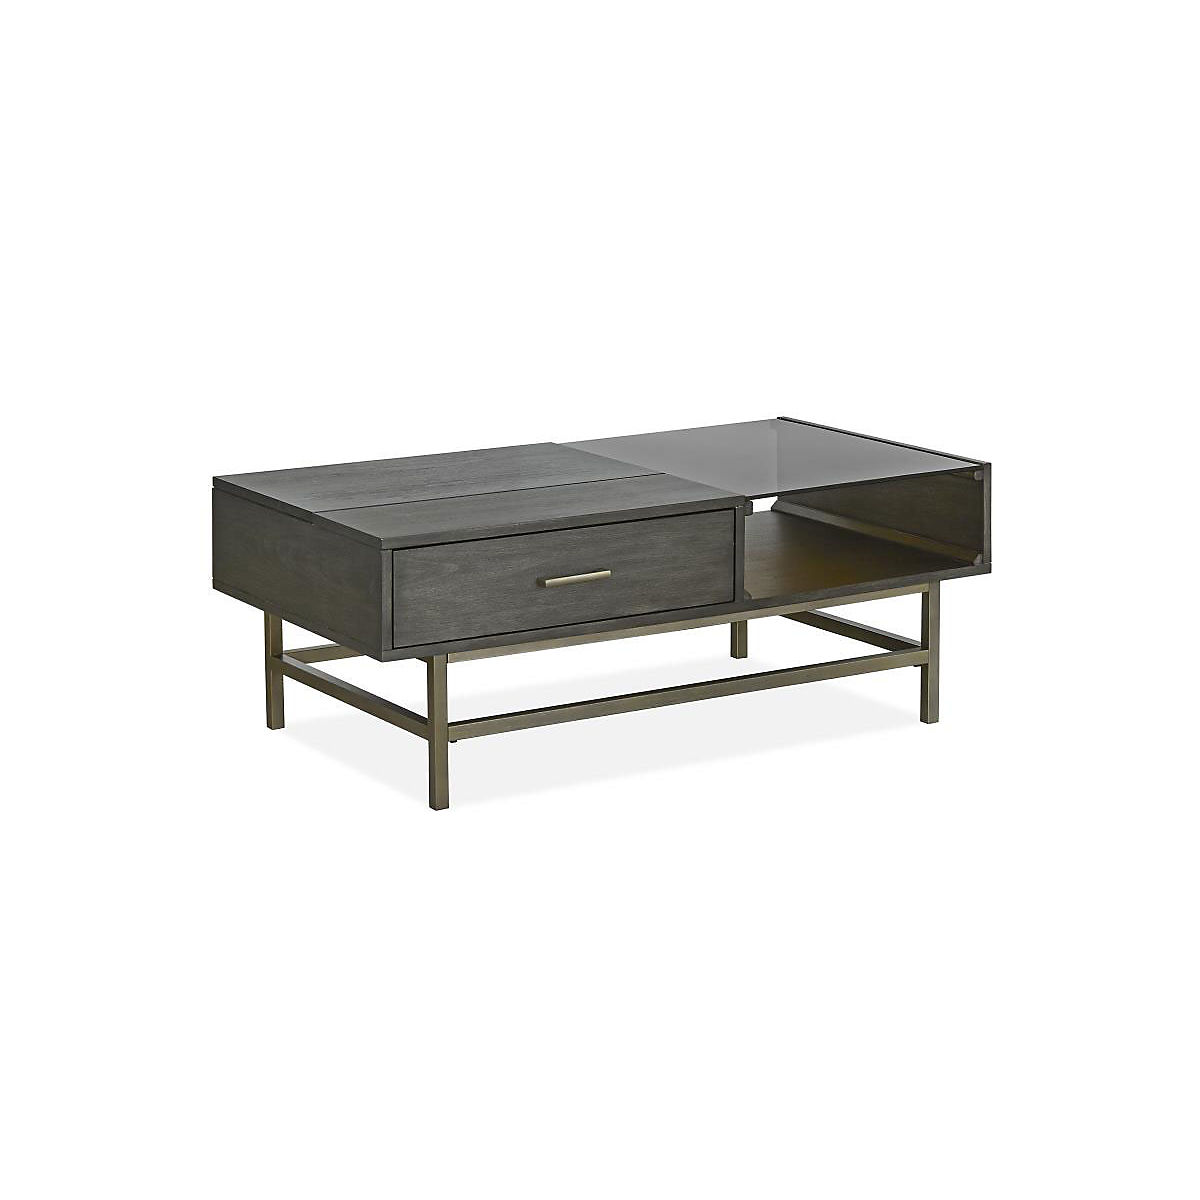 Lift Coffee Table.Dalhart Lift Coffee Table Star Furniture